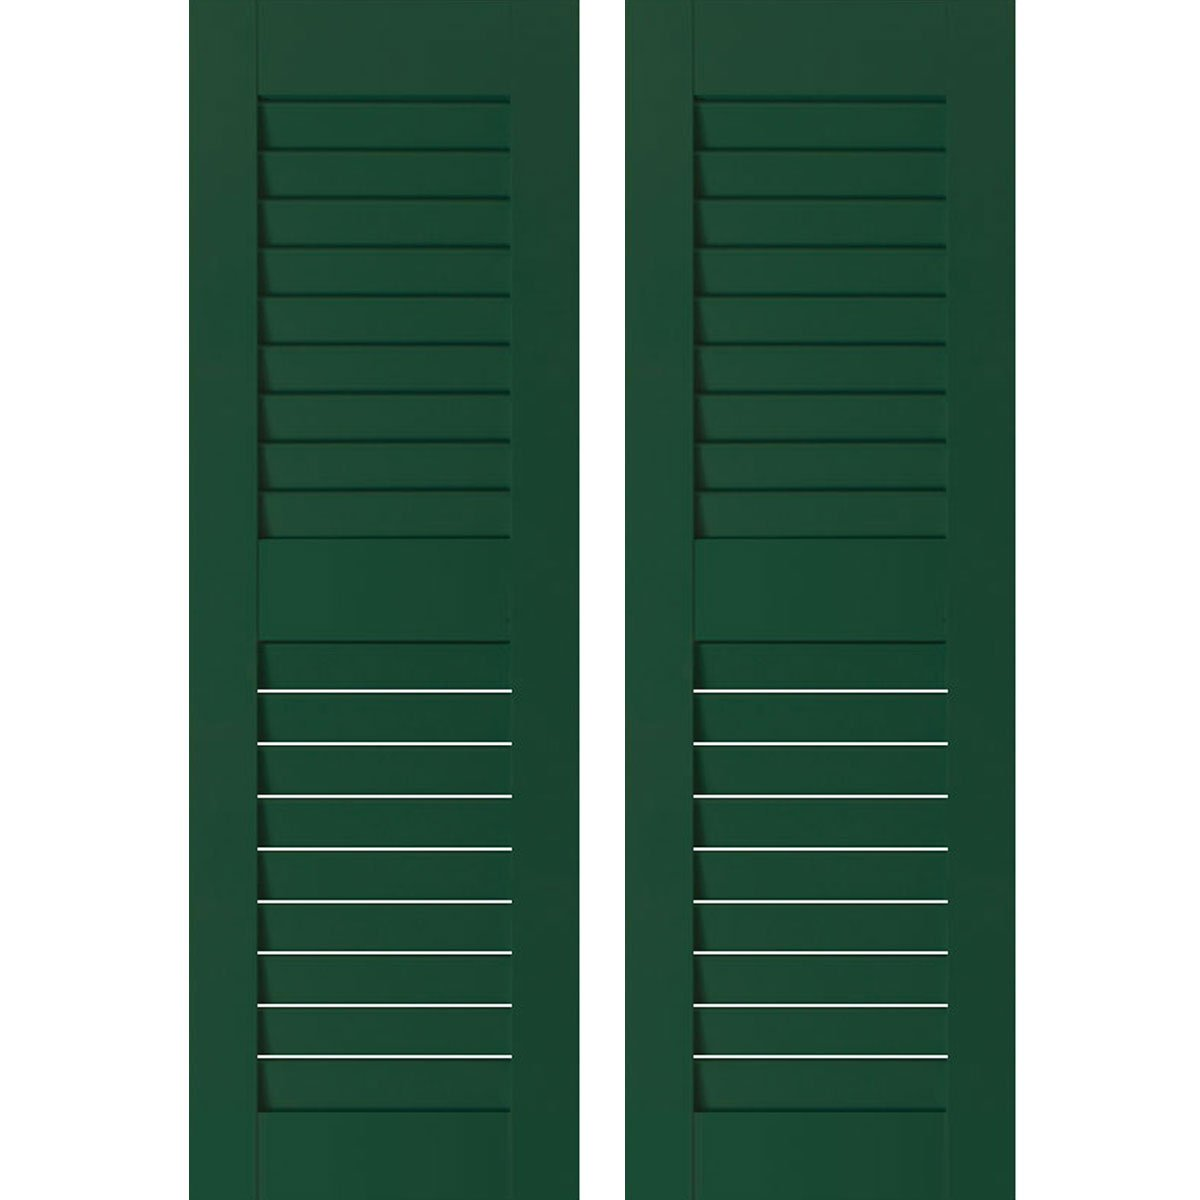 Ekena Millwork RWL12X064CGM Exterior Real Wood Sapele Mahogany Louvered Shutters (Per Pair), 12'' x 64'', Chrome Green